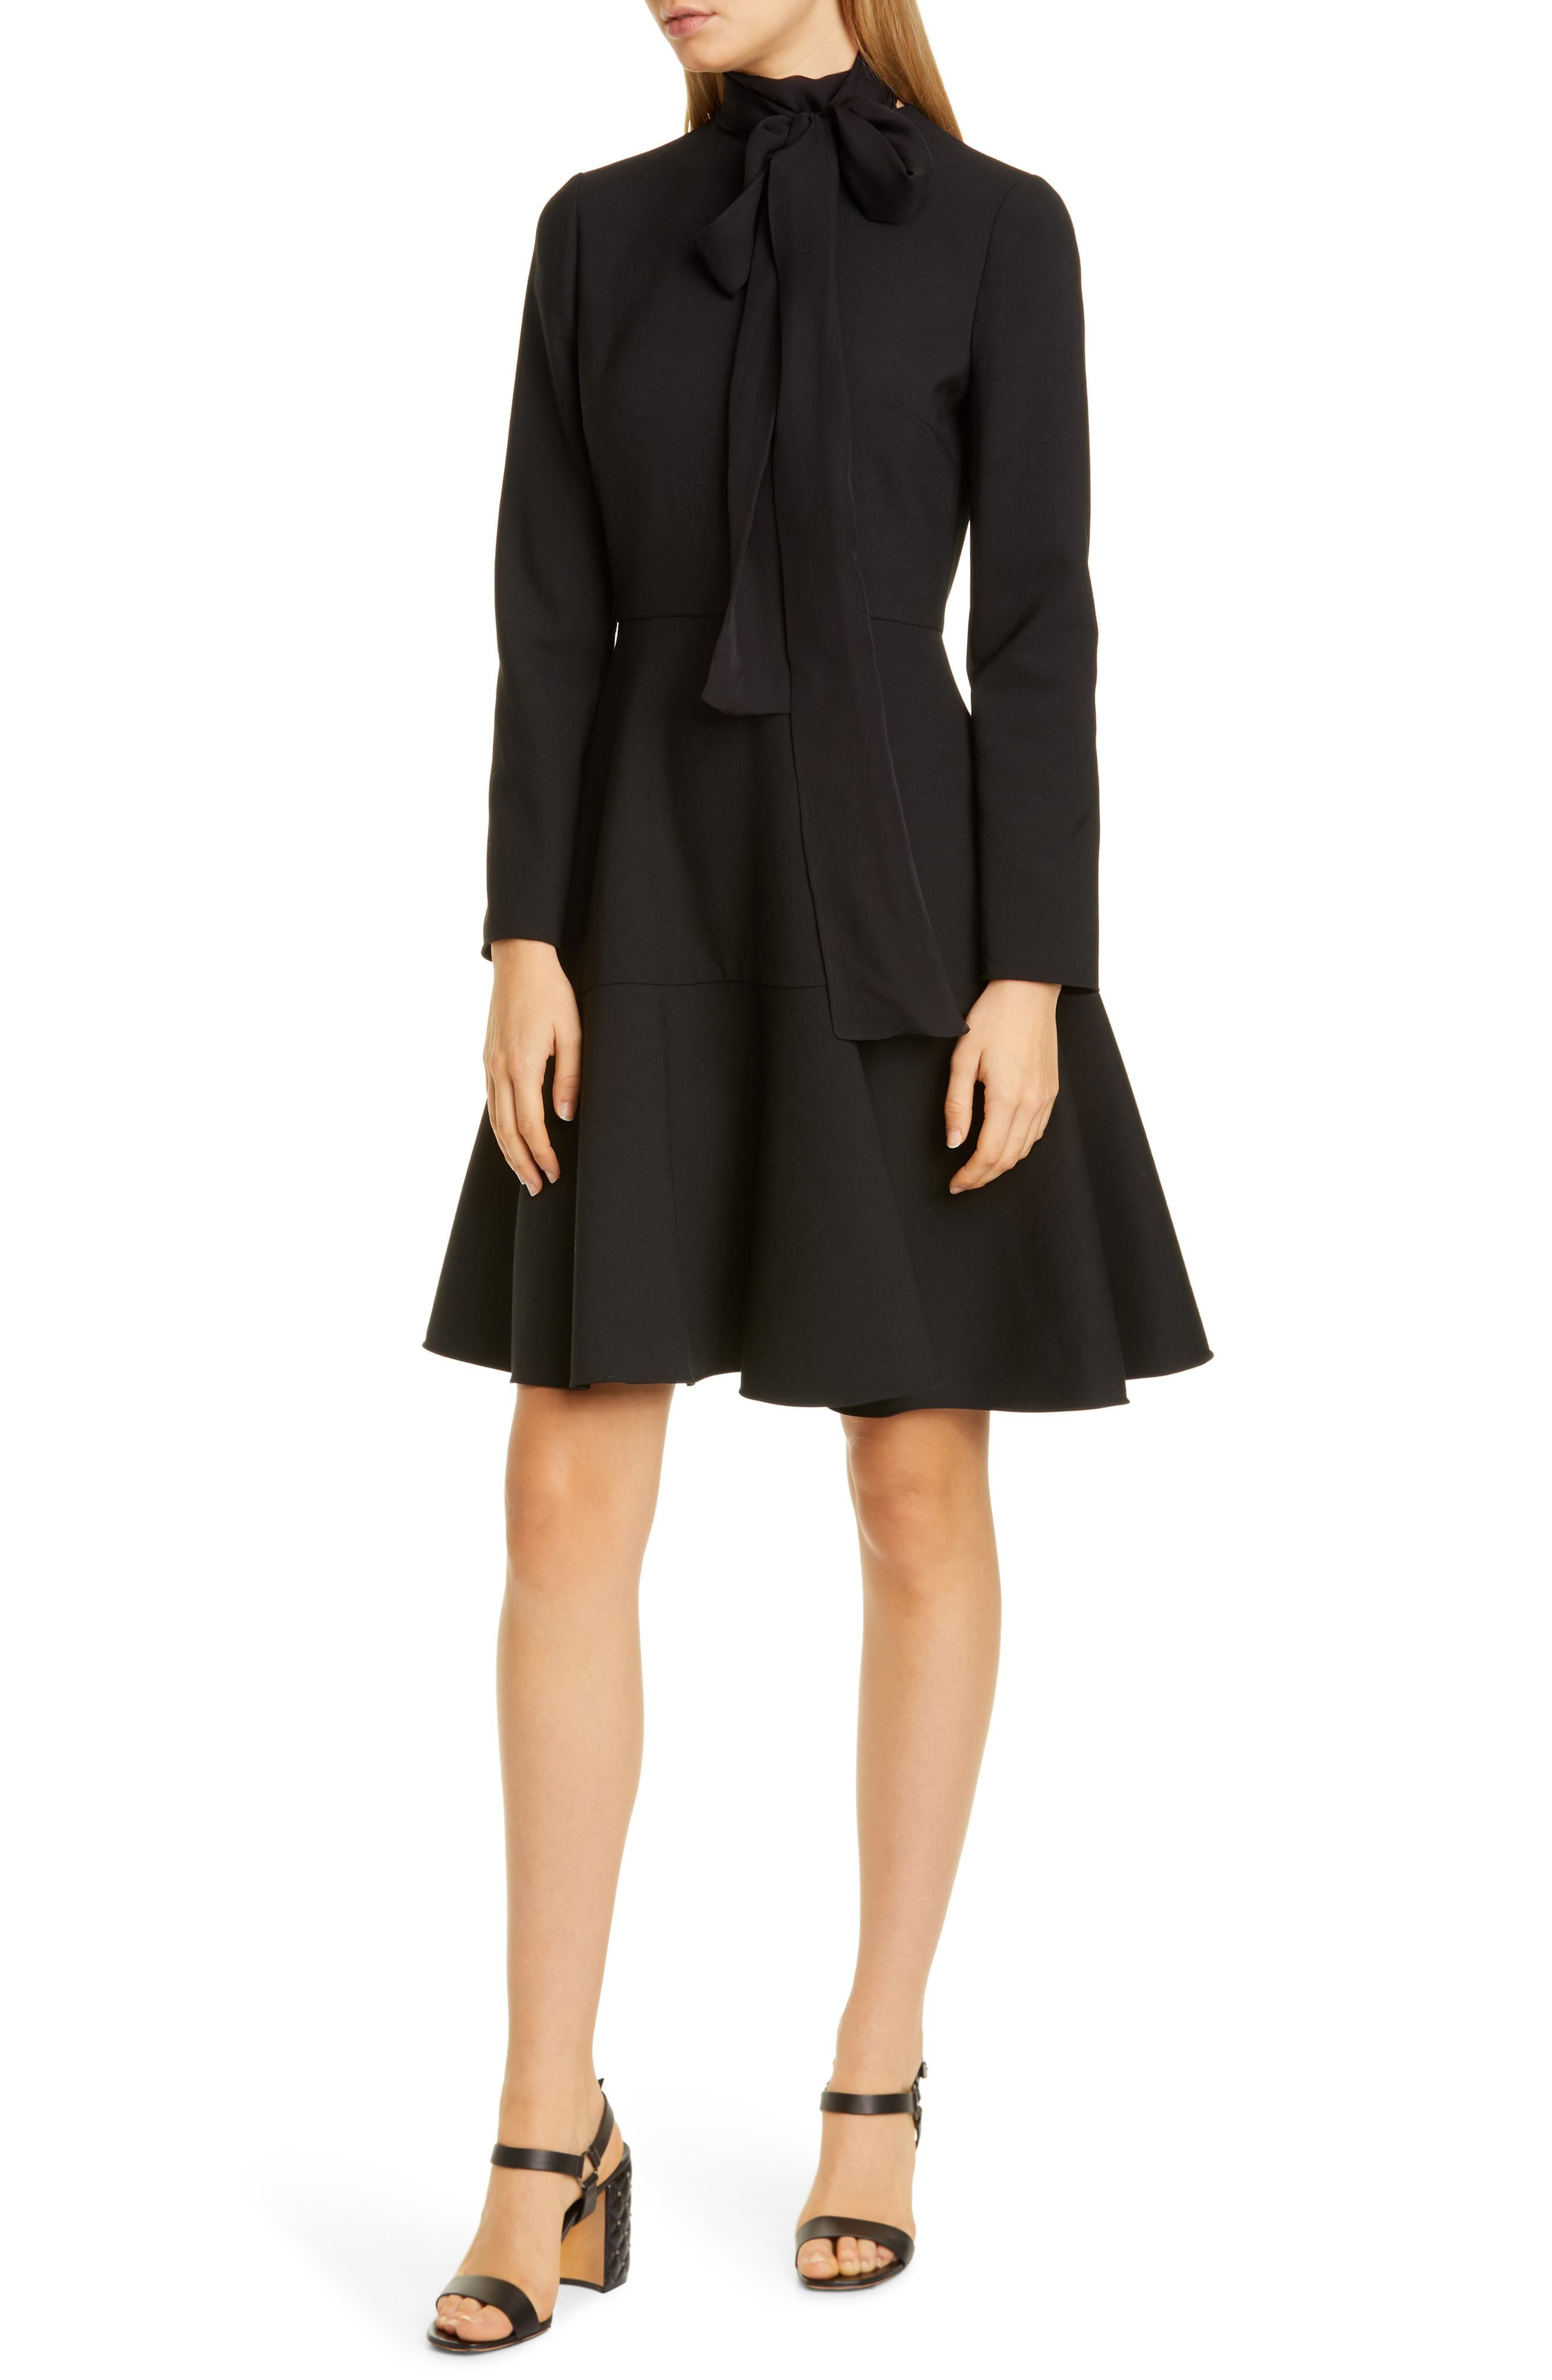 Valentino Tie Neck Long Sleeve Fit Flare Dress Nordstrom Long Sleeve Mini Dress Fashion Clothes Women Fit Flare Dress [ 4048 x 2640 Pixel ]